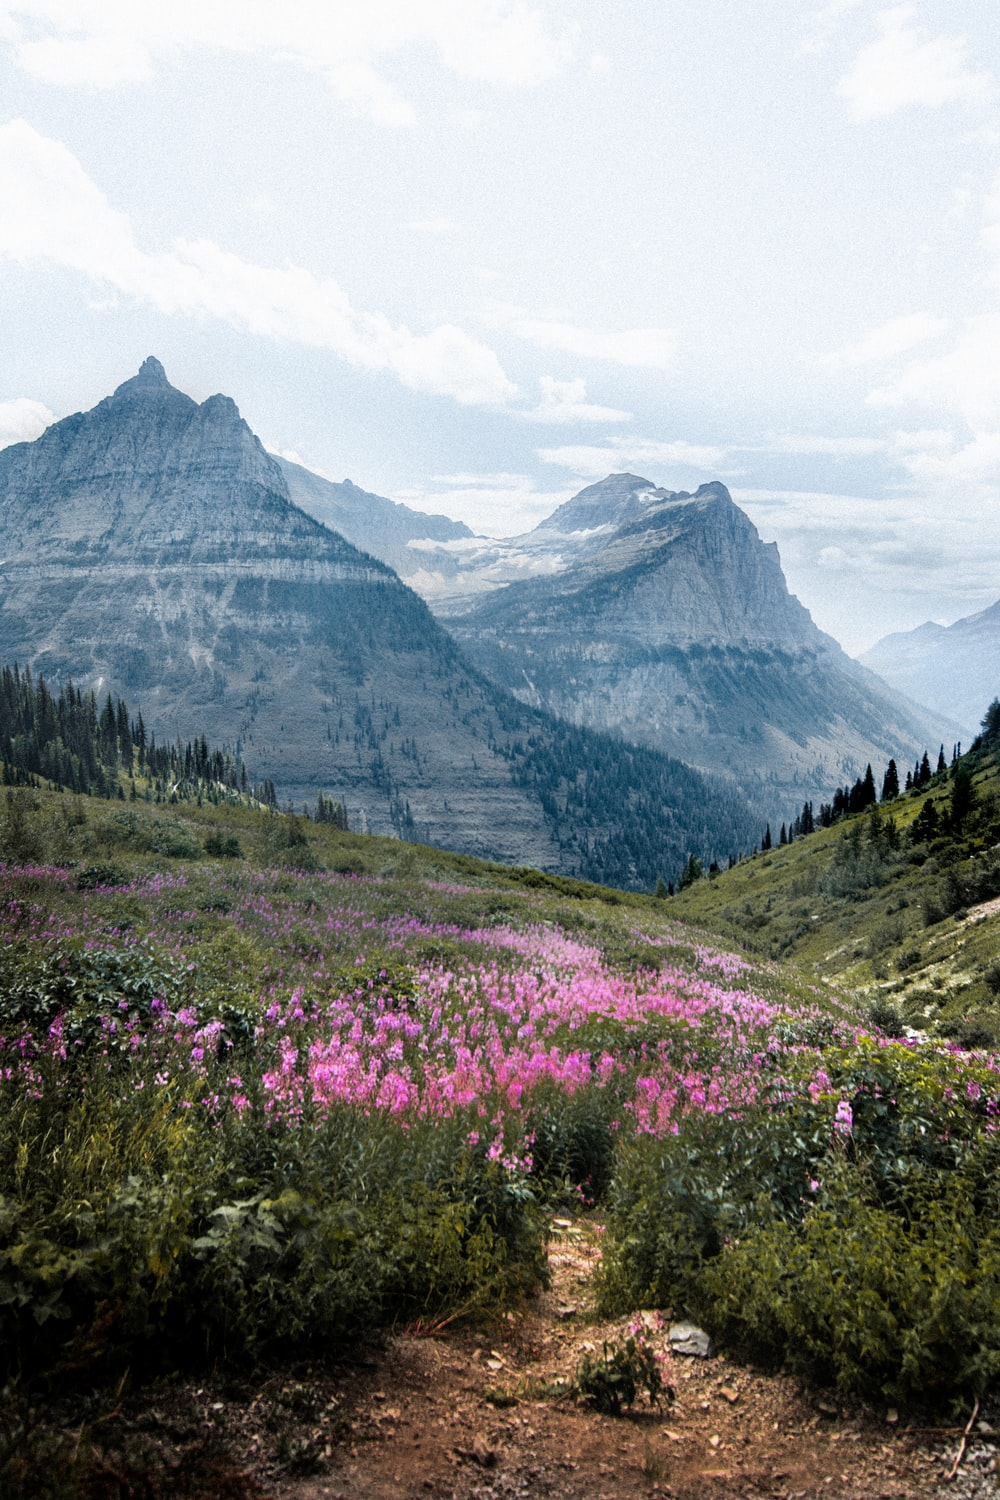 pink petaled flower near mountain during daytime